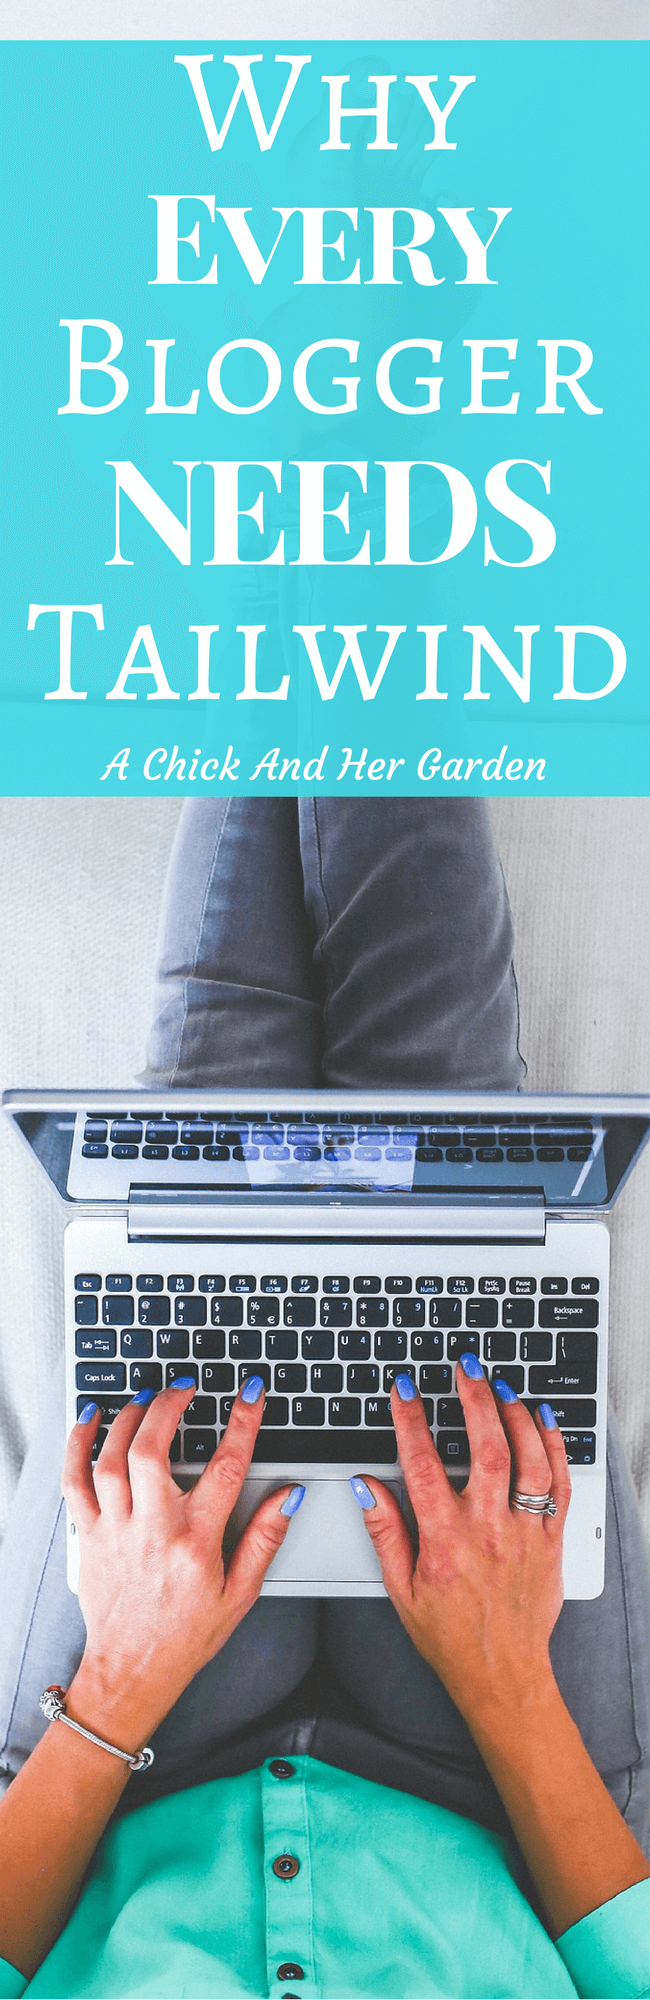 Are you new to blogging? or are you looking for a new way to get your pins out there without constantly sitting at your computer? See why Tailwind is my number one tool in my blogging toolbox and why every blogger NEEDS Tailwind! #blogging #pinning #blogtools #newblog #pinterestforbusiness